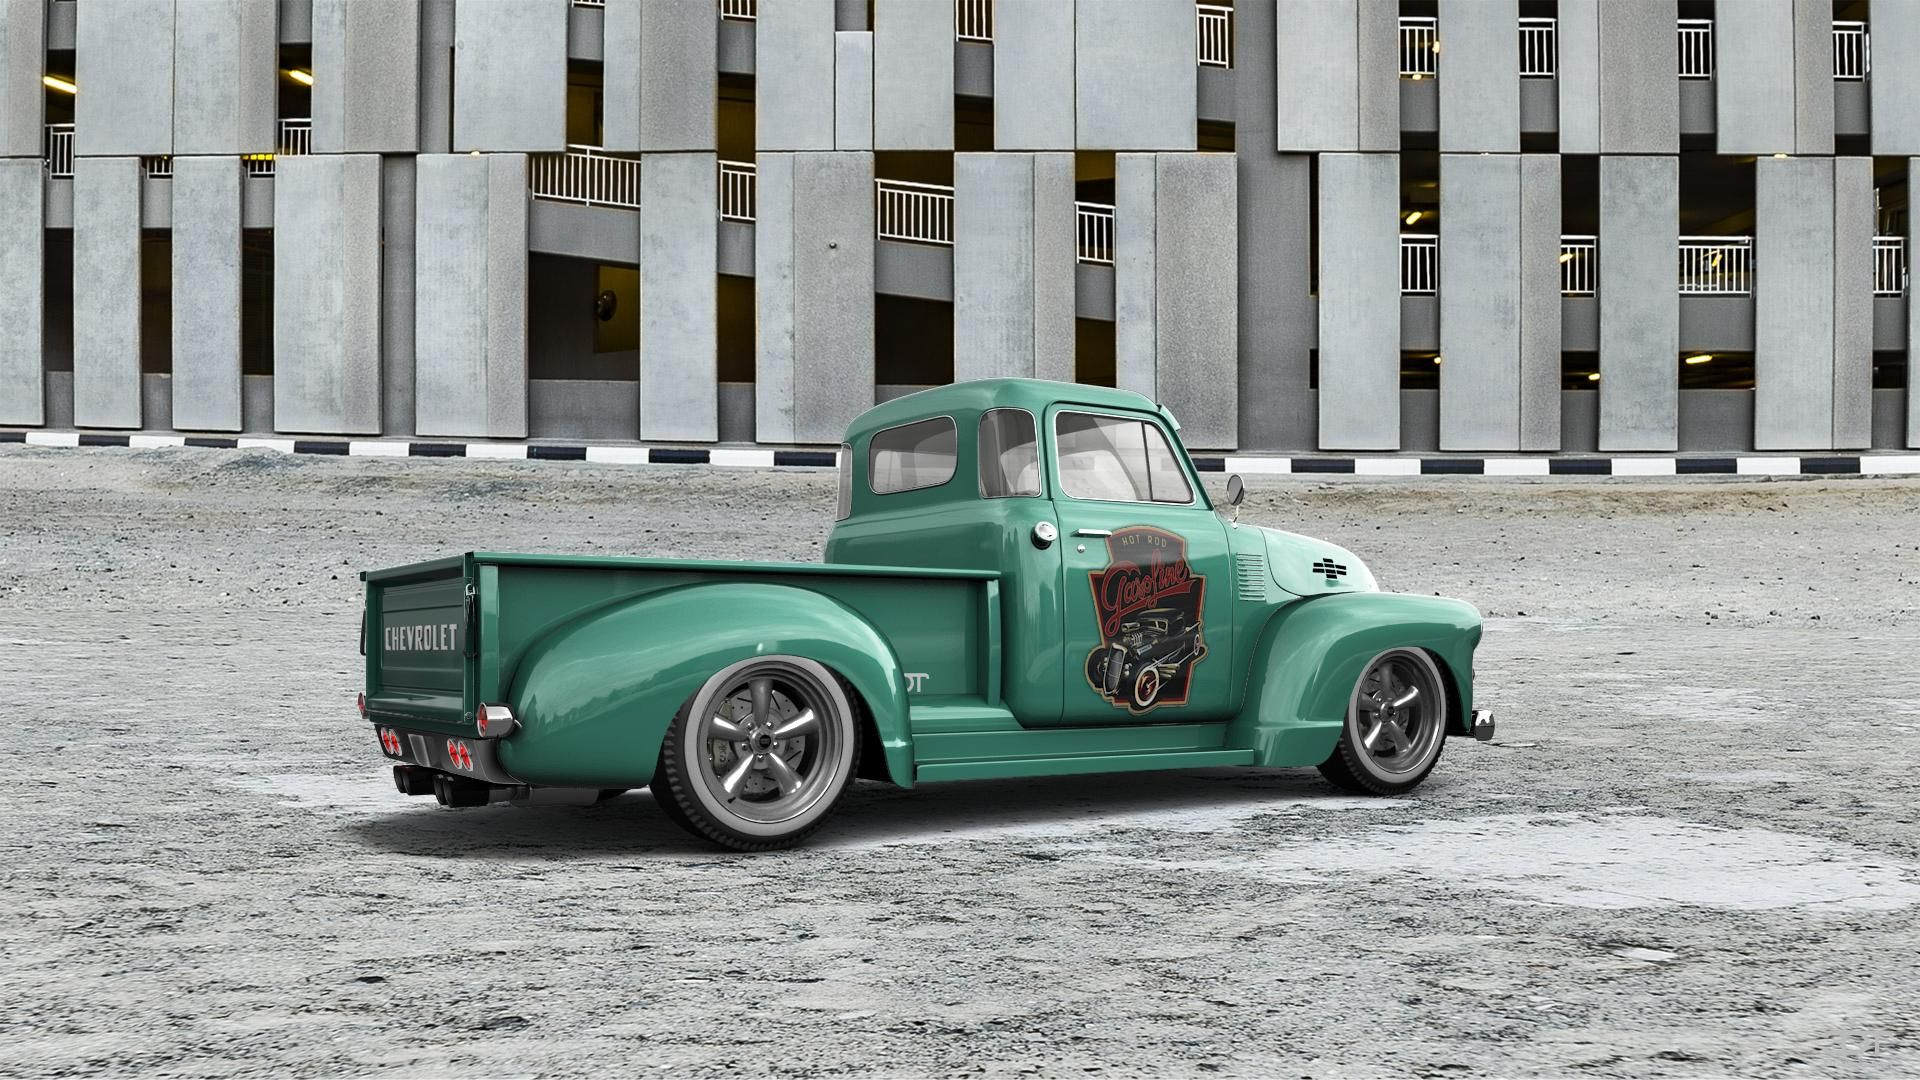 Checkout My Tuning Chevrolet 3100 1954 At 3dtuning 3dtuning